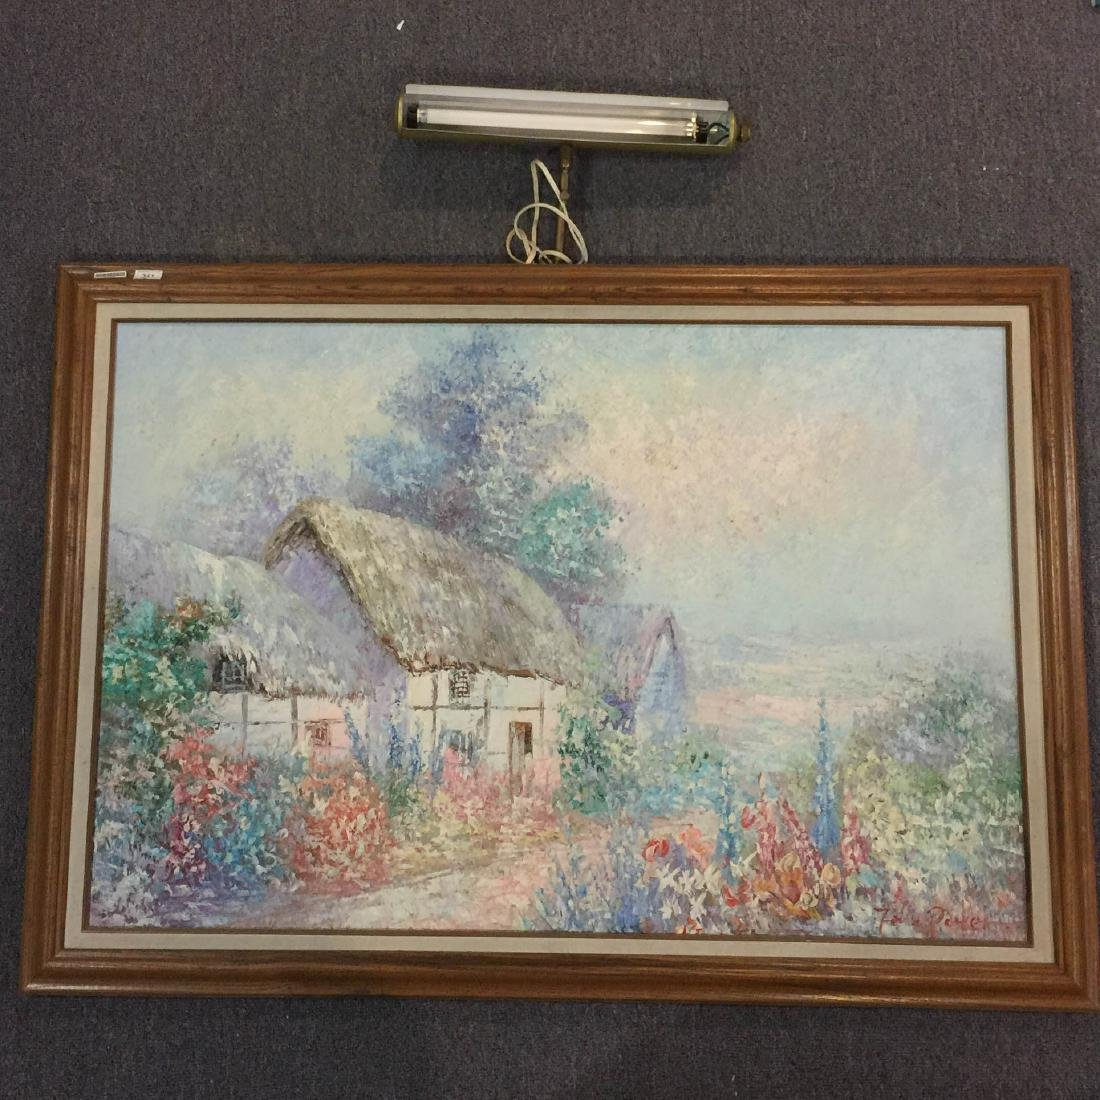 Framed Oil painting with light